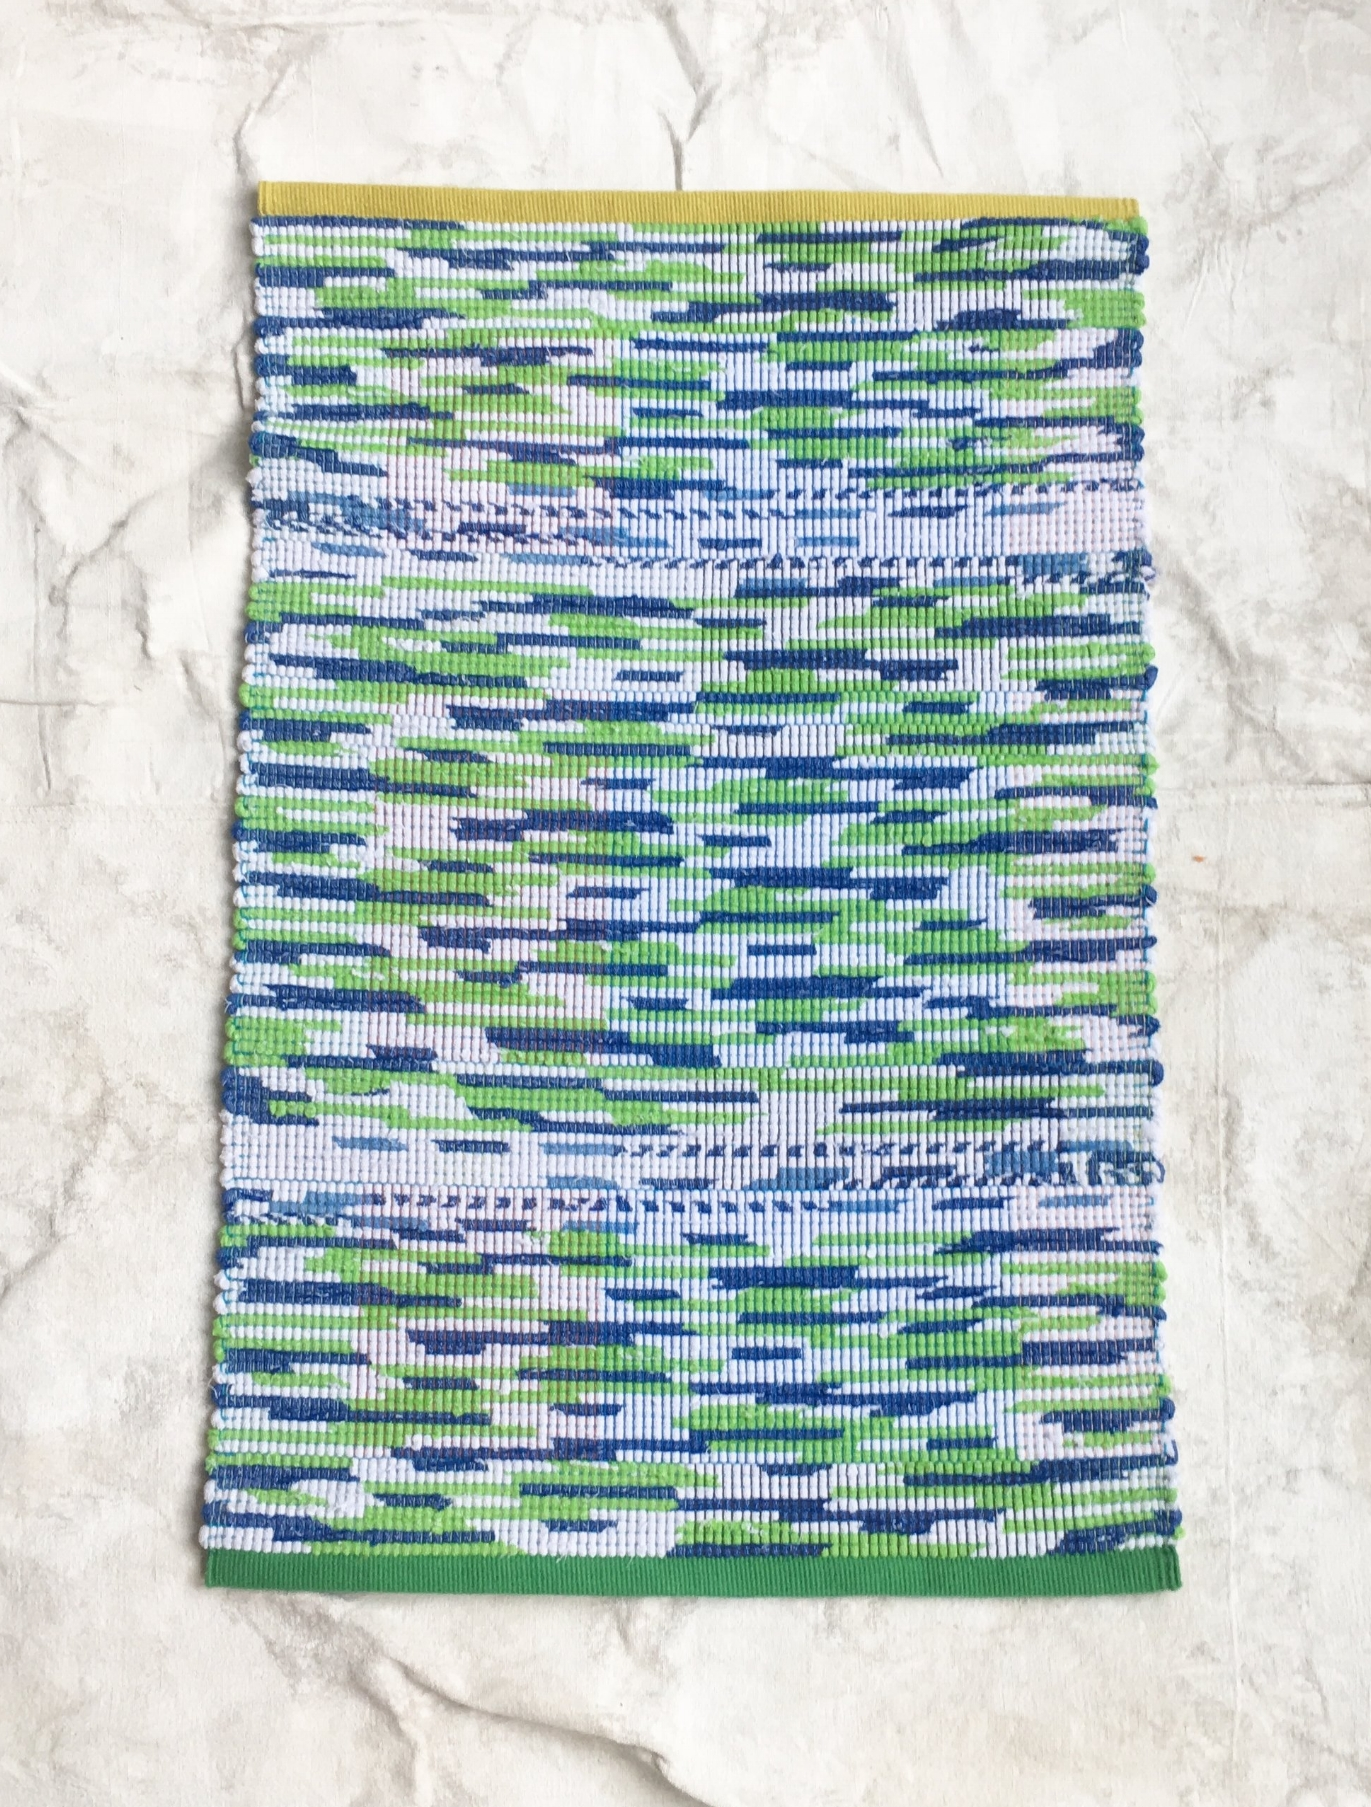 Rag Rug made in collaboration with Claudia Mills - $225